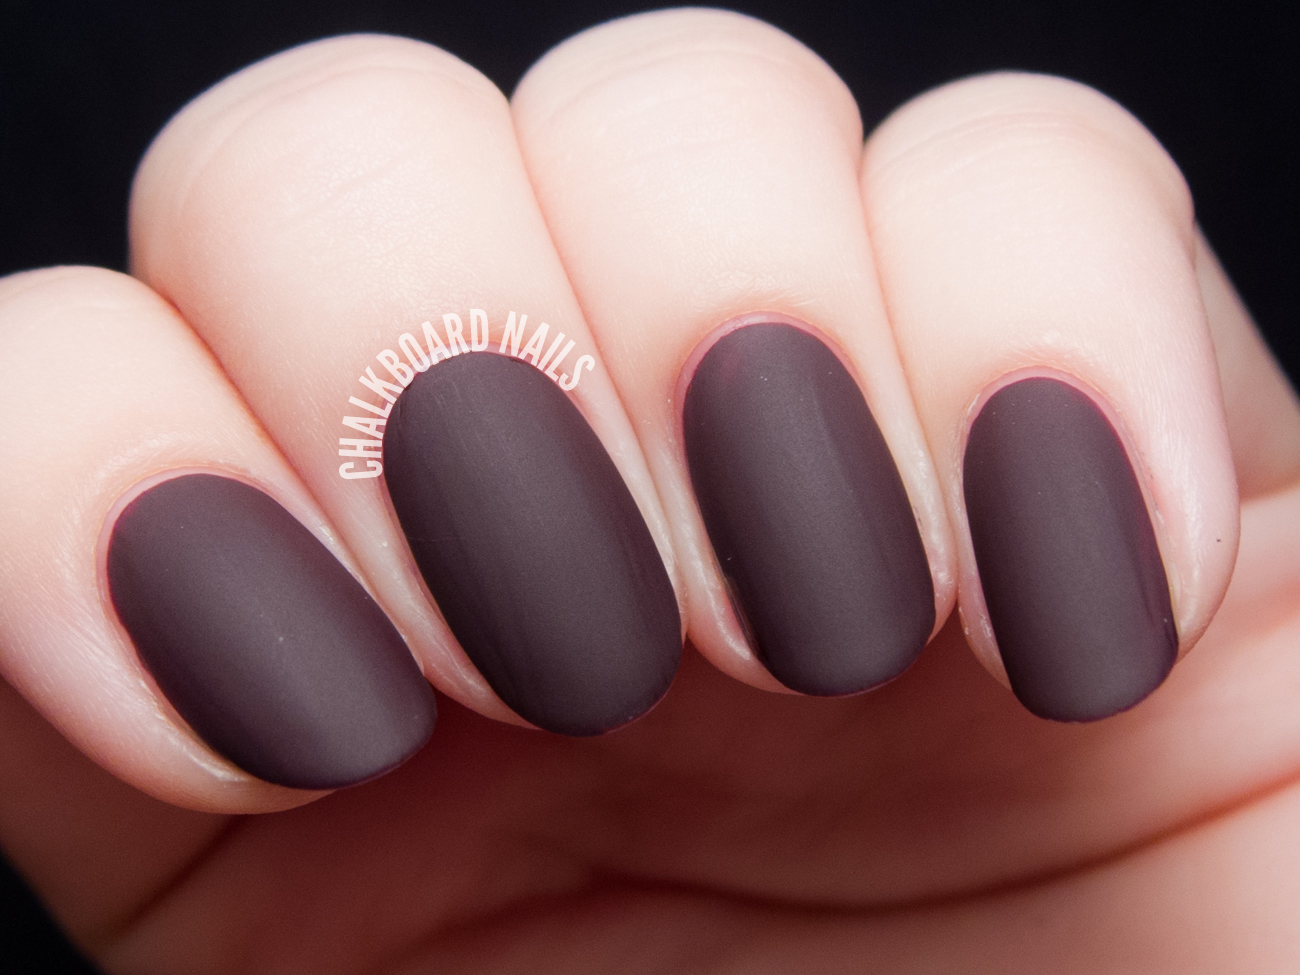 Cirque Colors La Vie Boheme (with matte topcoat) via @chalkboardnails